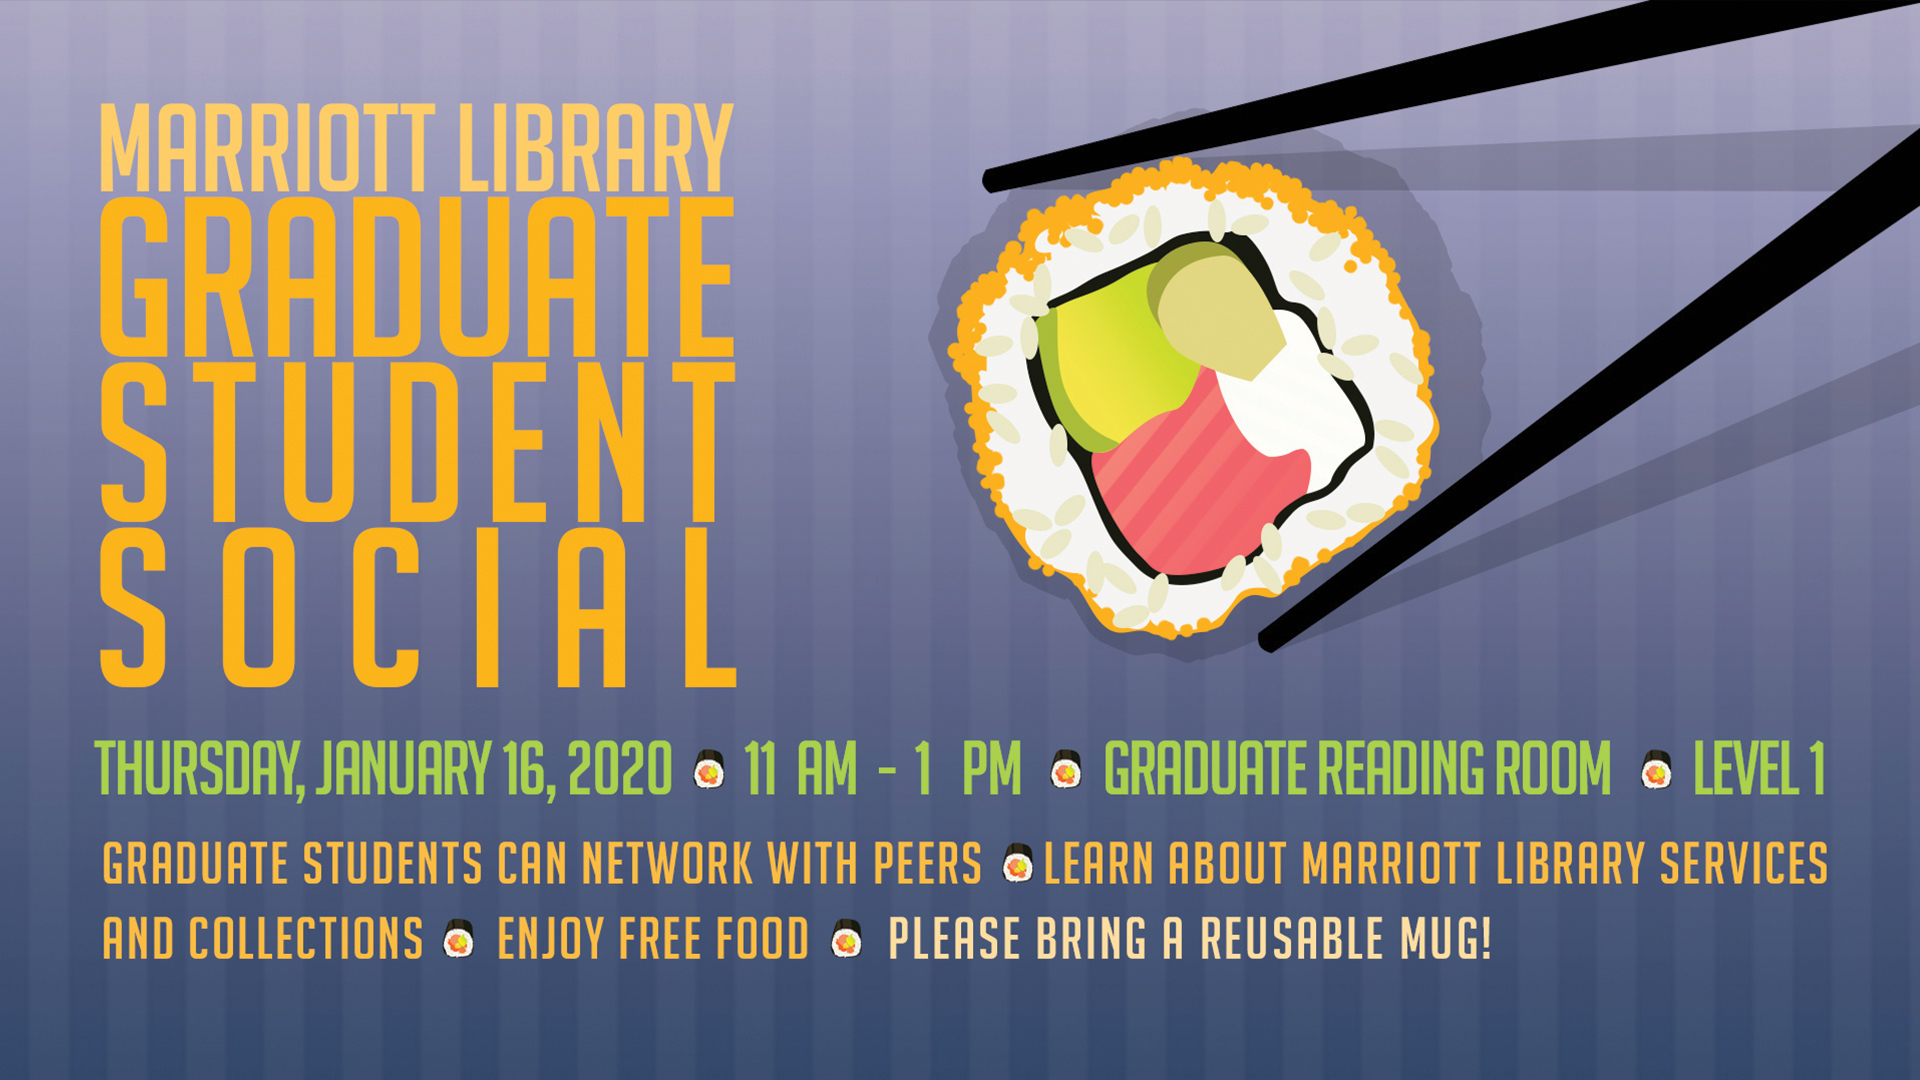 marriott library graduate student social thursday january 16th 11 am to 1pm graduate reading room level 1 free food and networking